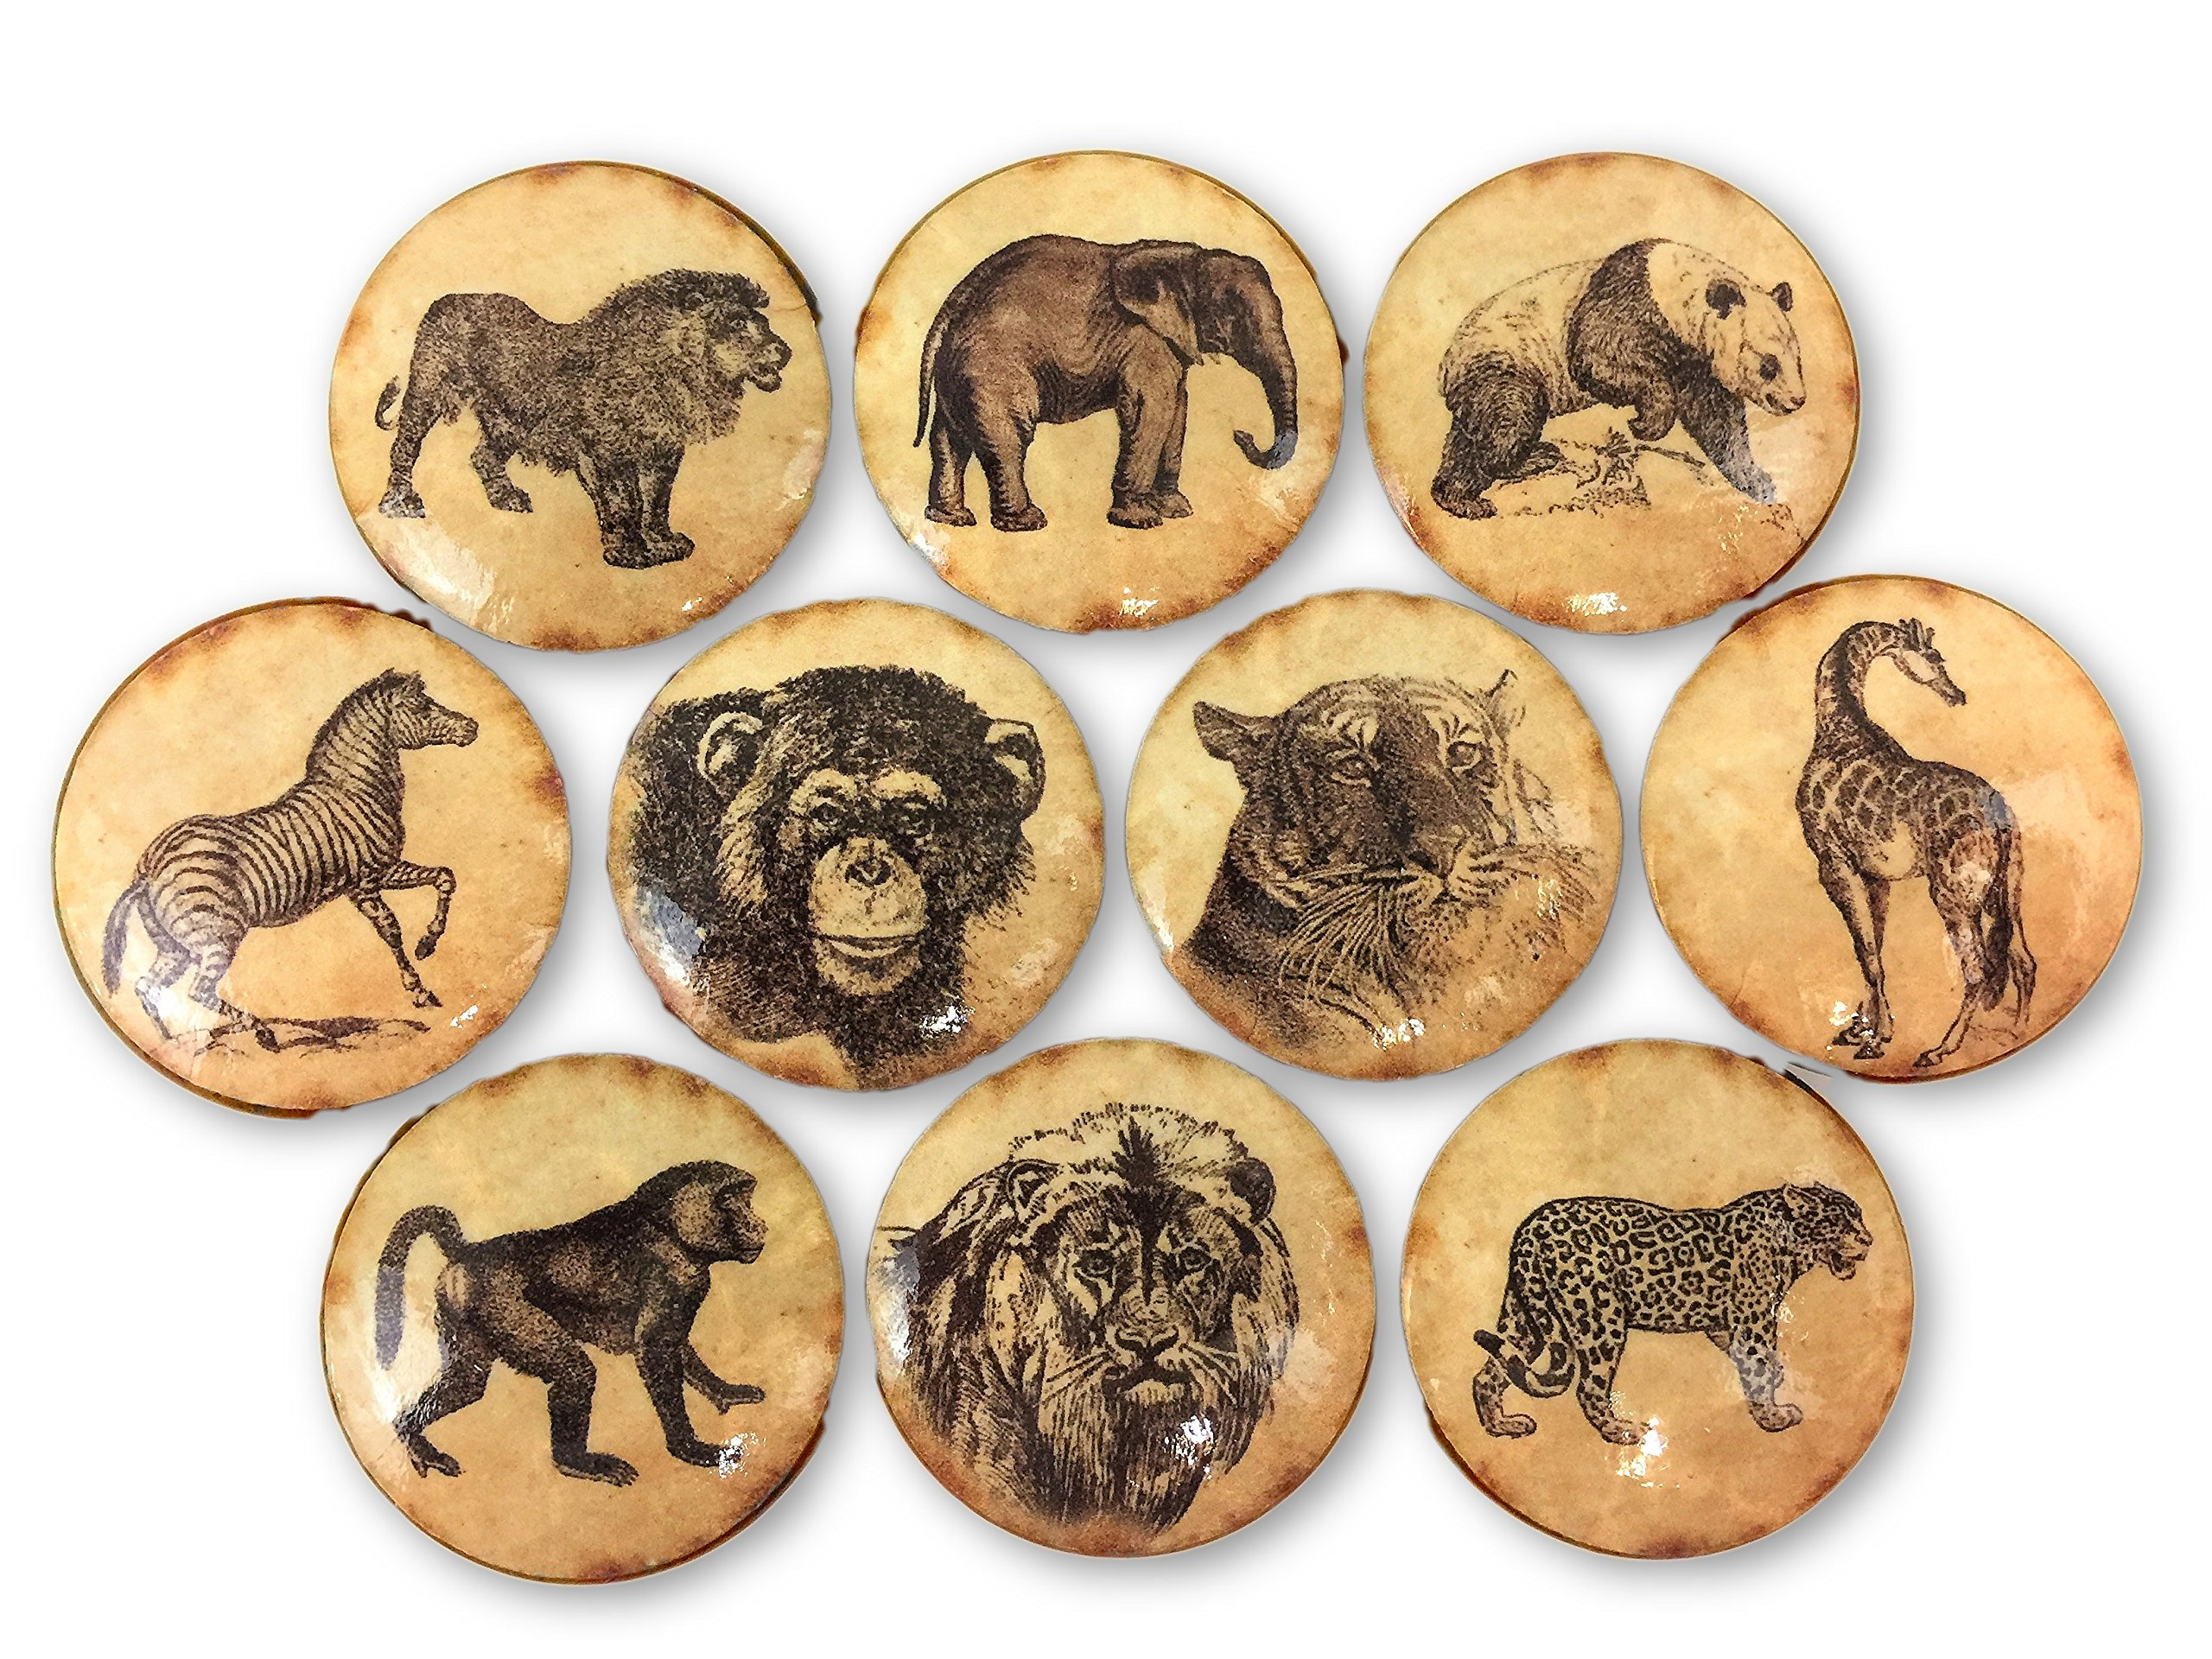 Set of 10 Vintage Safari Animals Print Wood Cabinet Knobs by Twisted R Design